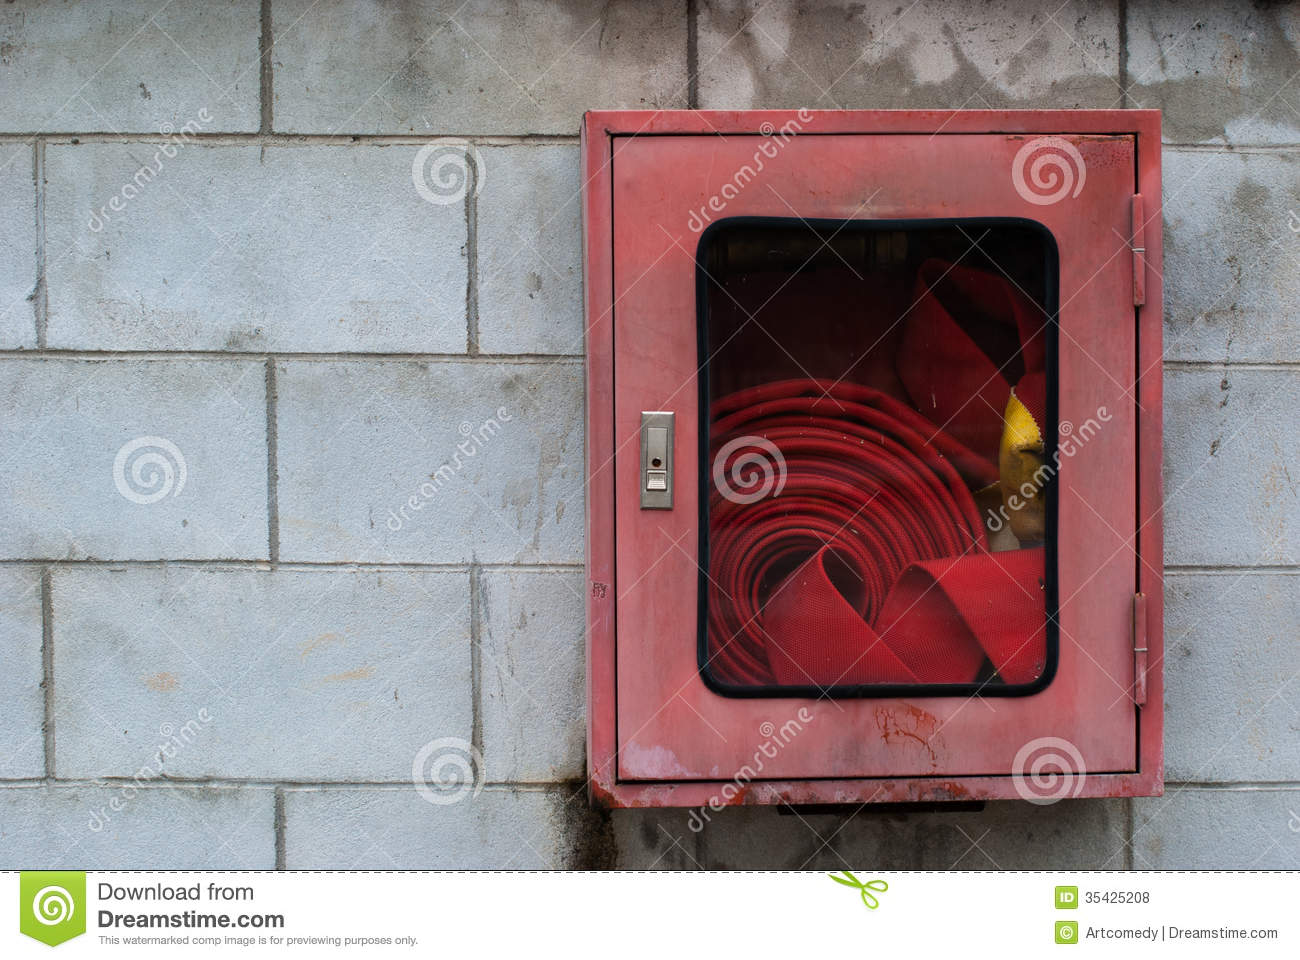 Fire Hose Cabinet Royalty Free Stock Photos  Image 35425208